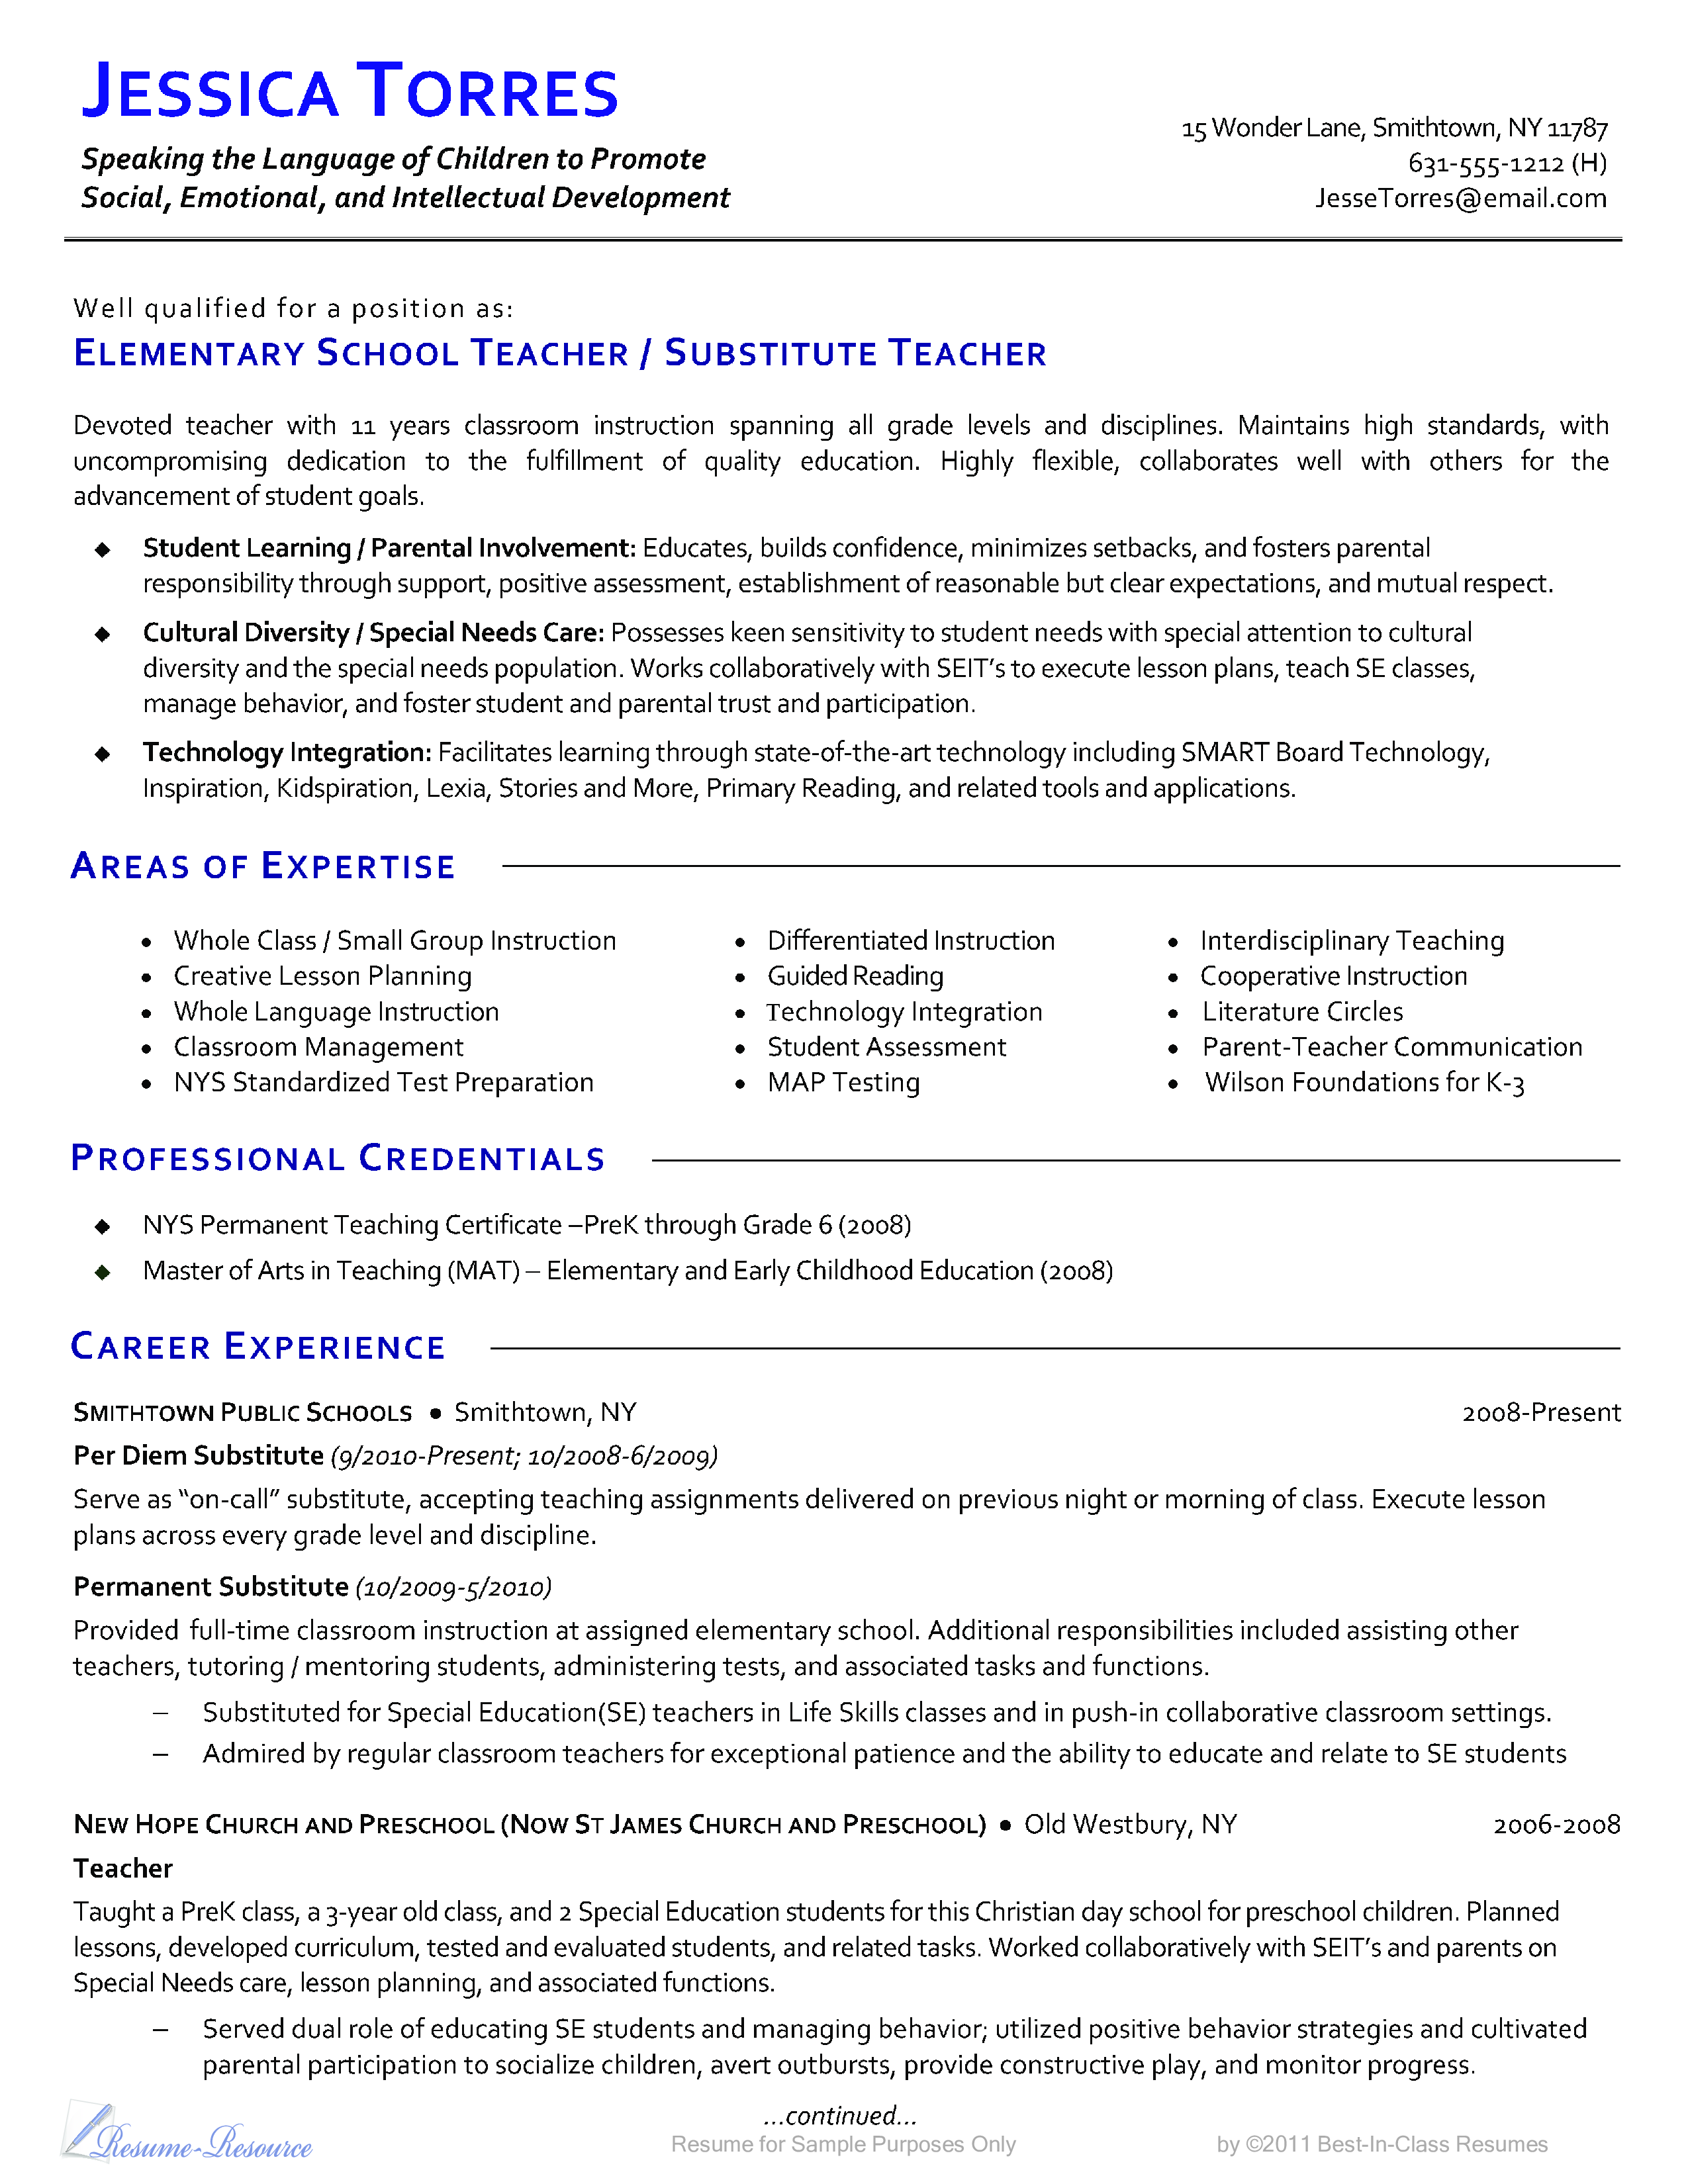 Elementary School Teacher CV template | Templates at ...